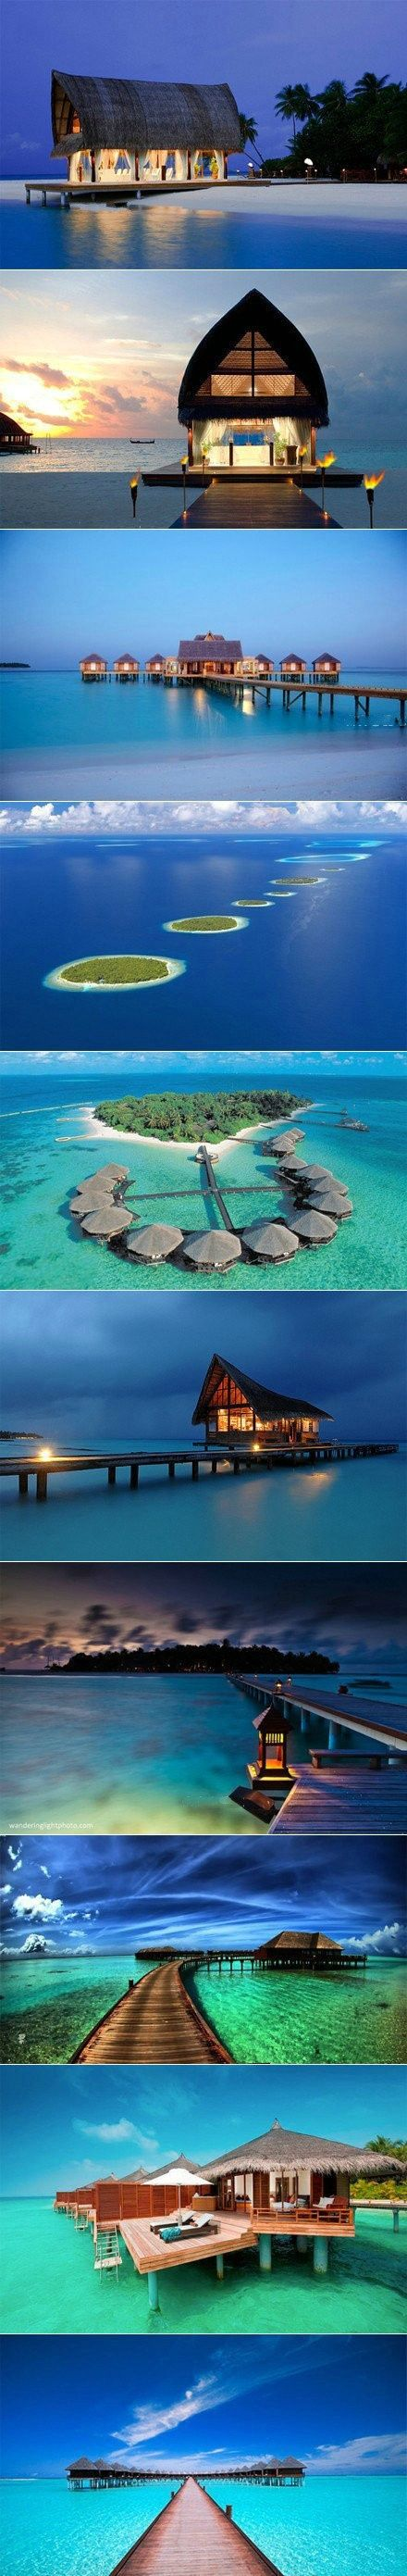 These beautiful small huts in maldives have always been for Places to go for a mini vacation